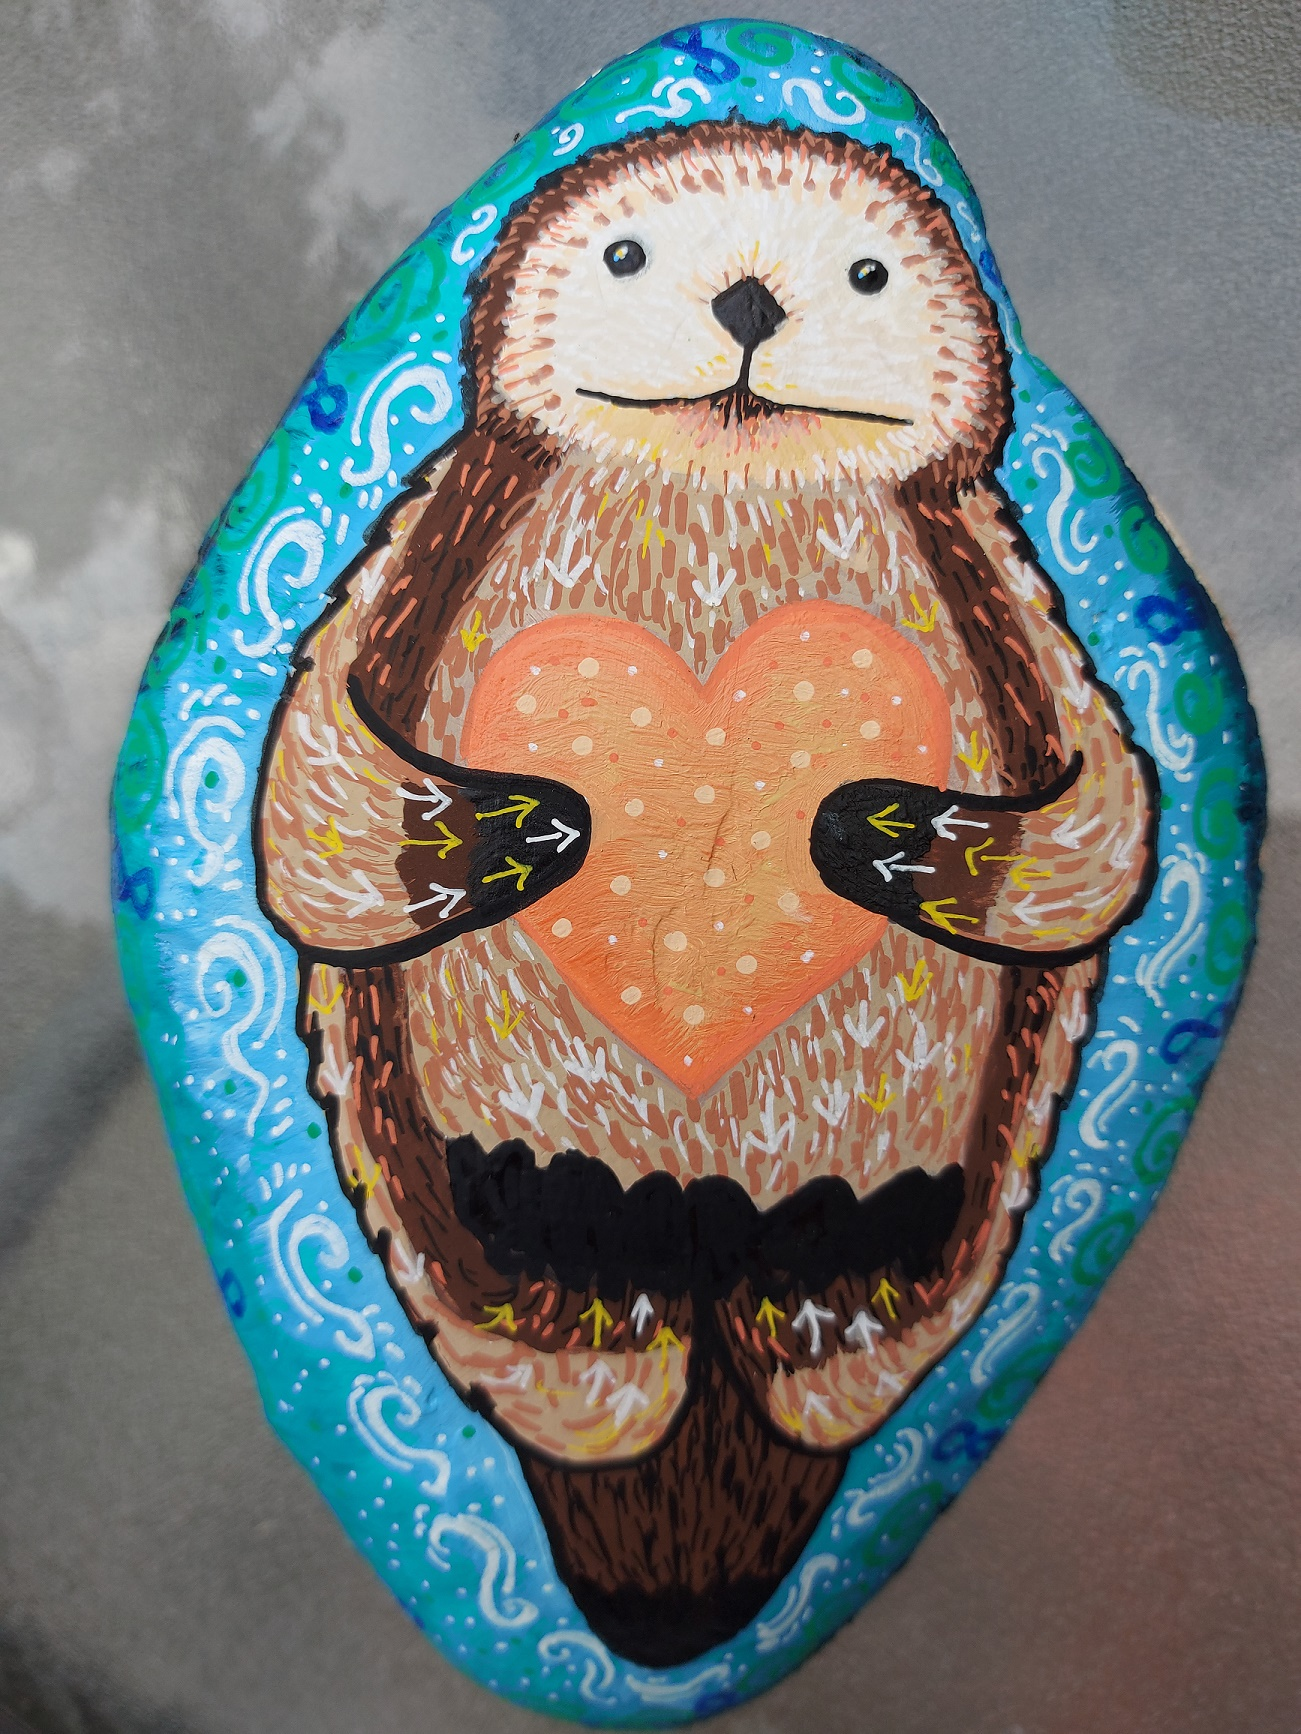 Otter self love - with Heather Caruso at Art Therapy Guelph in Ontario.